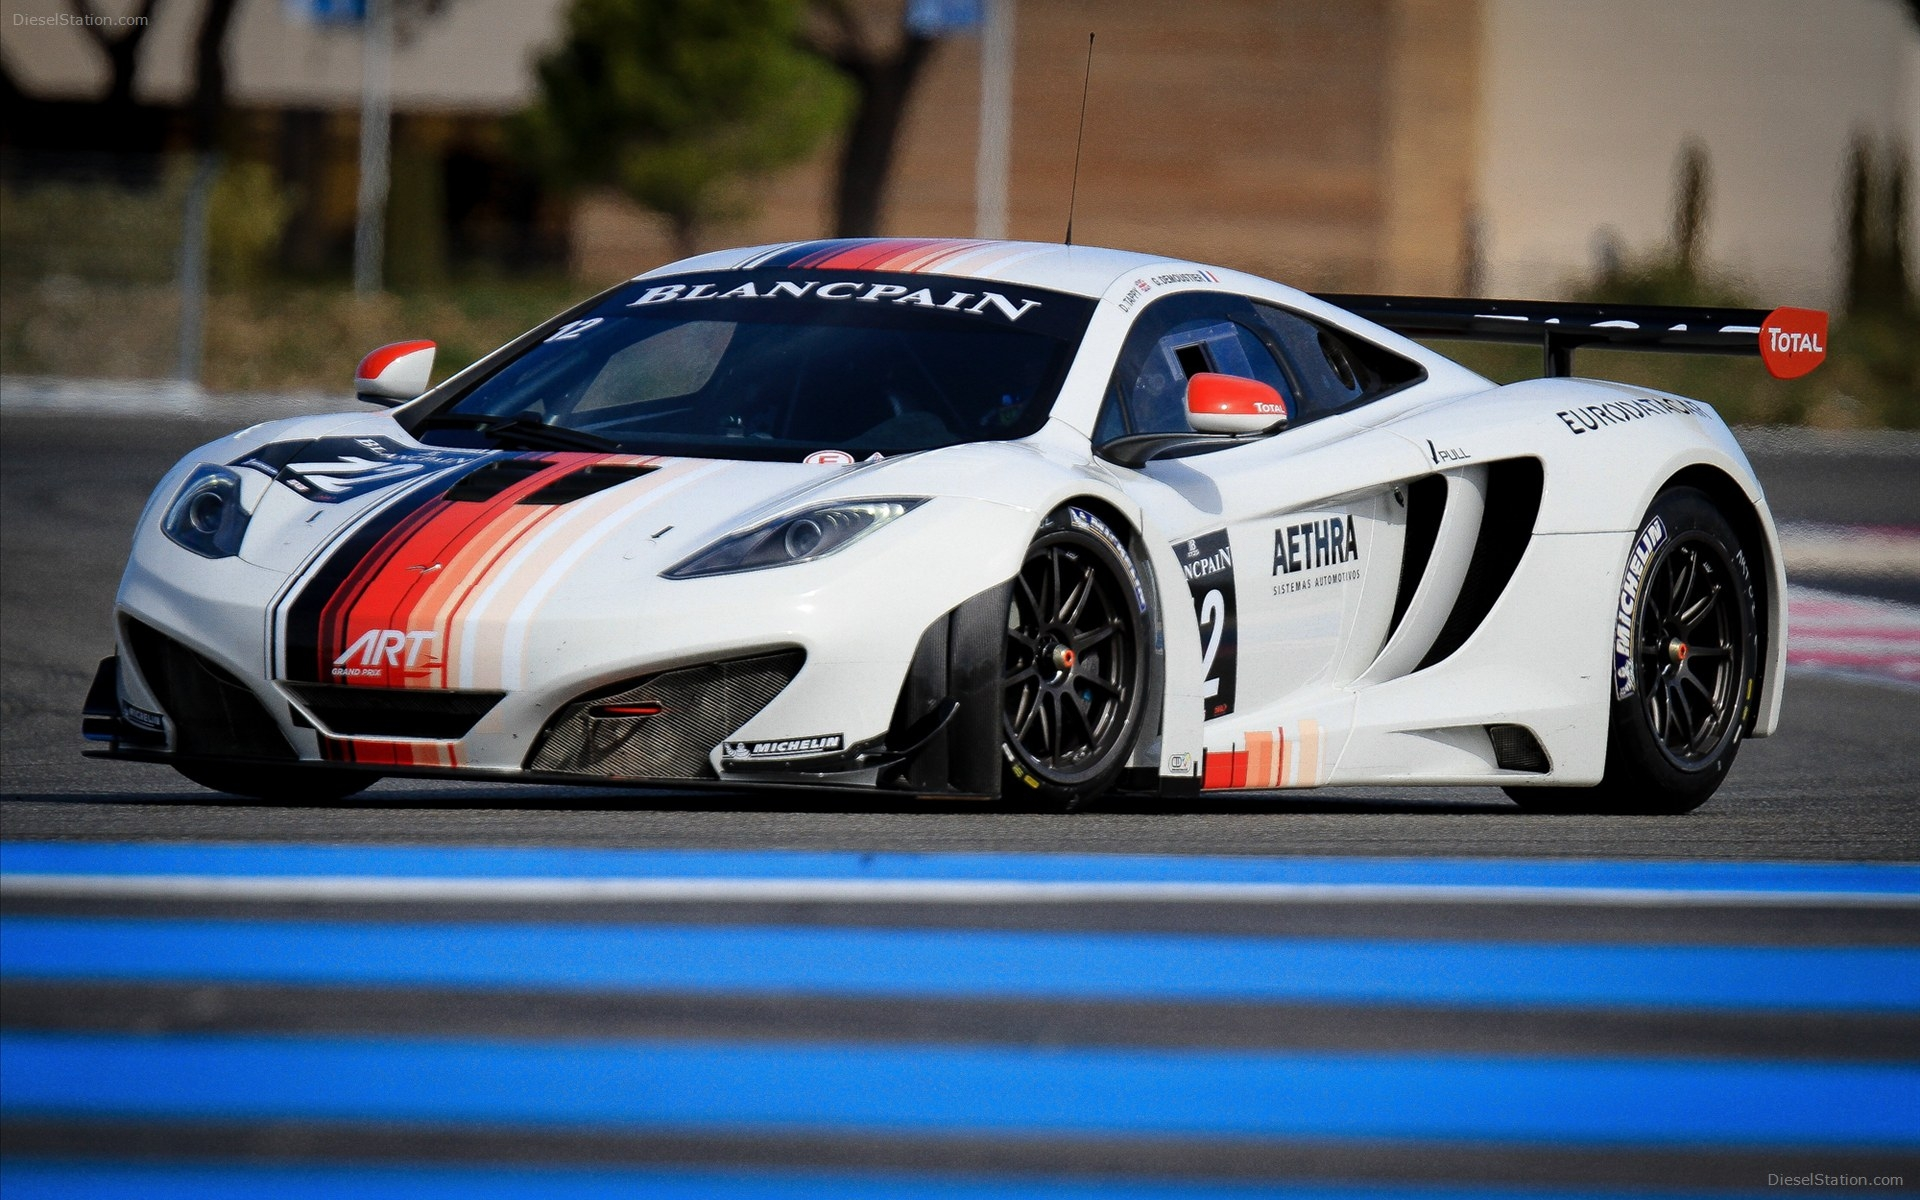 mclaren-mp-c-gt-Mclaren-Mp-c-Gt-Widescreen-Exotic-Car-wallpaper-wpc5807087